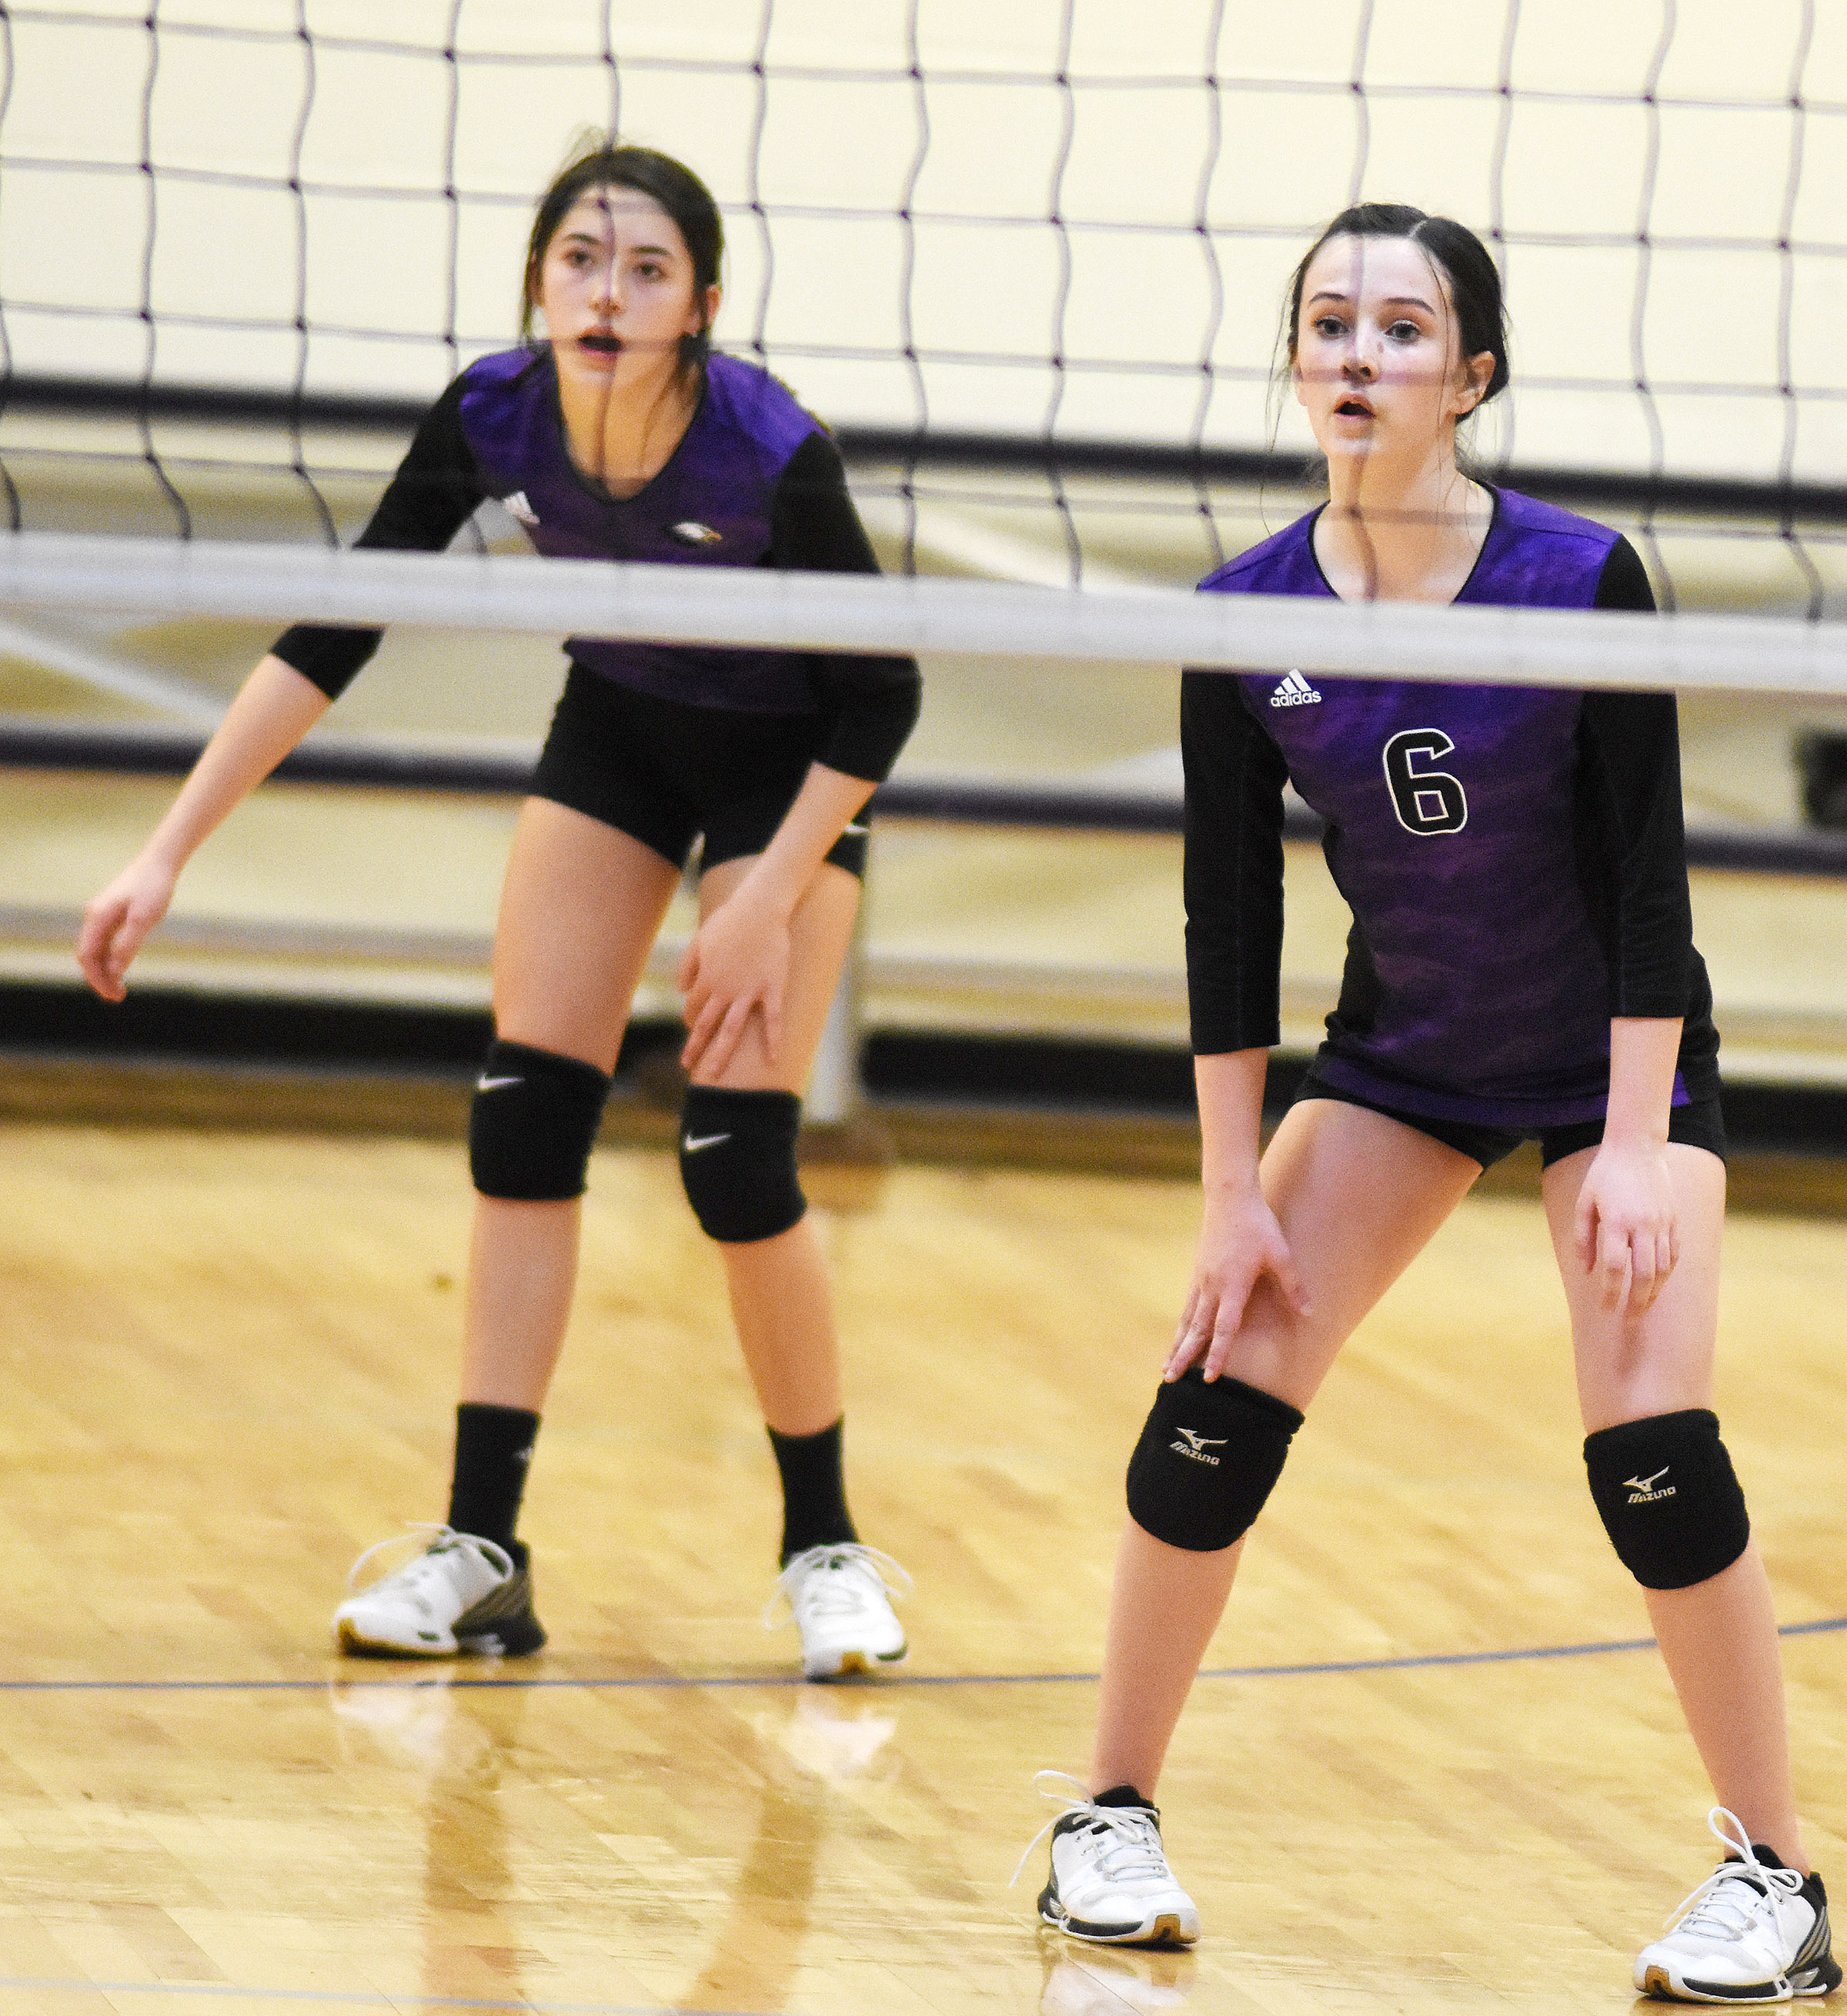 CMS eighth-graders Kaylyn Smith, at left, and Sarah Adkins watch the ball.